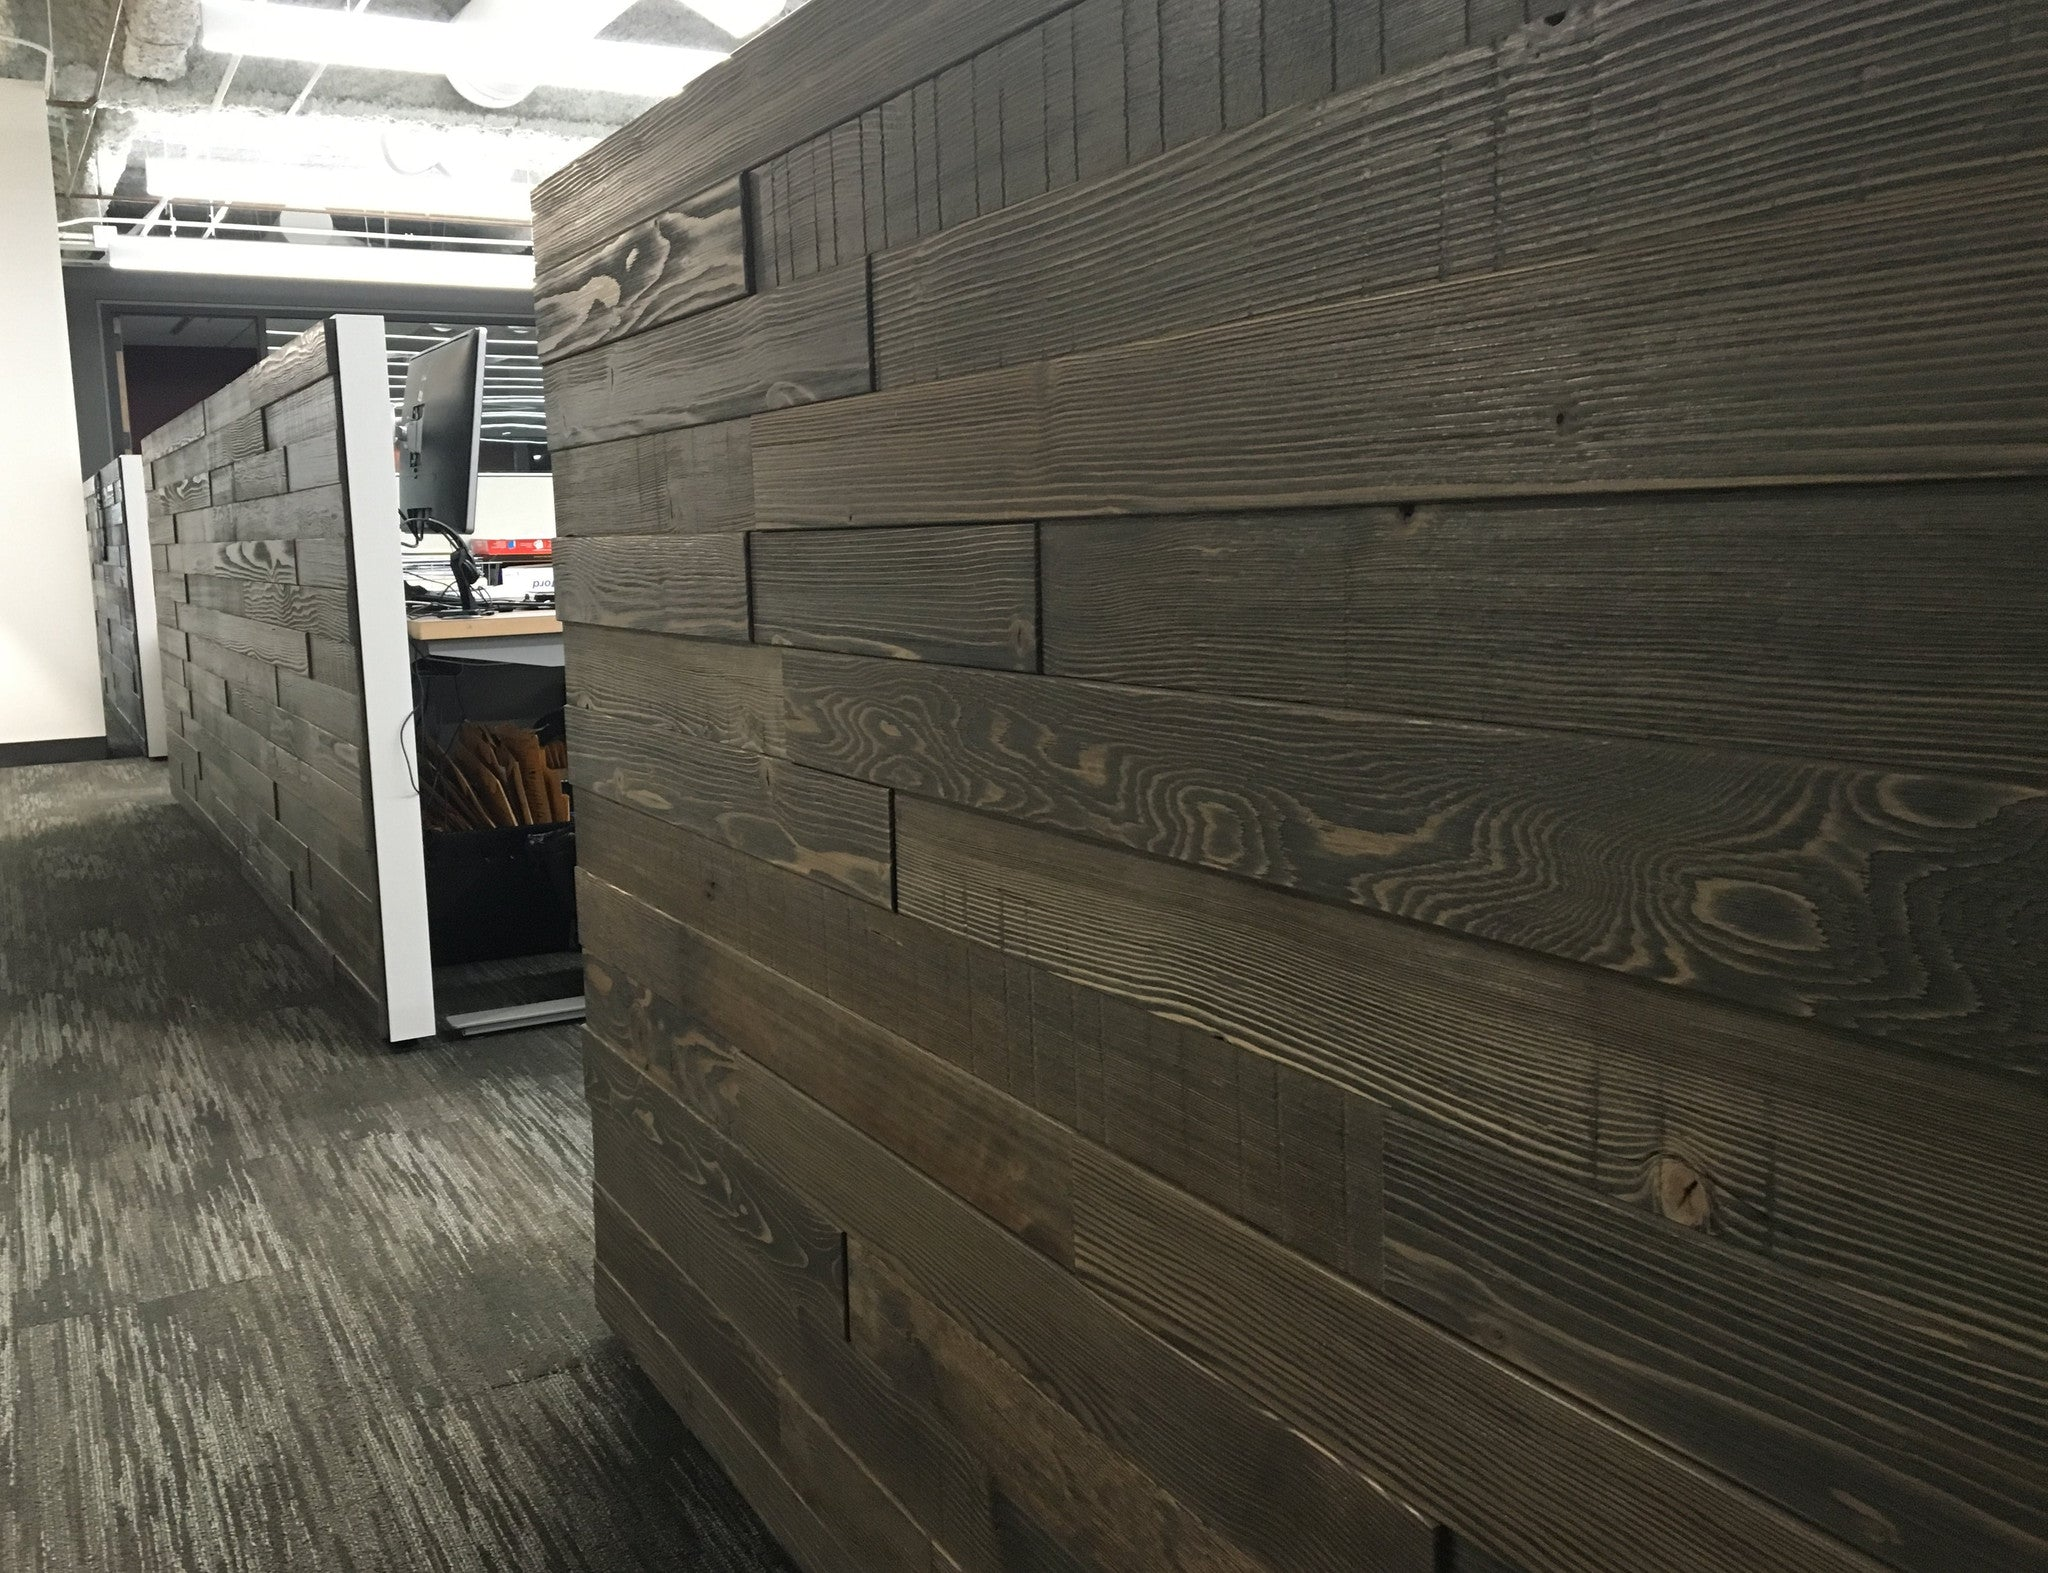 Multi-Level Wall Cladding-Textured | PCC Market Office, Seattle, WA